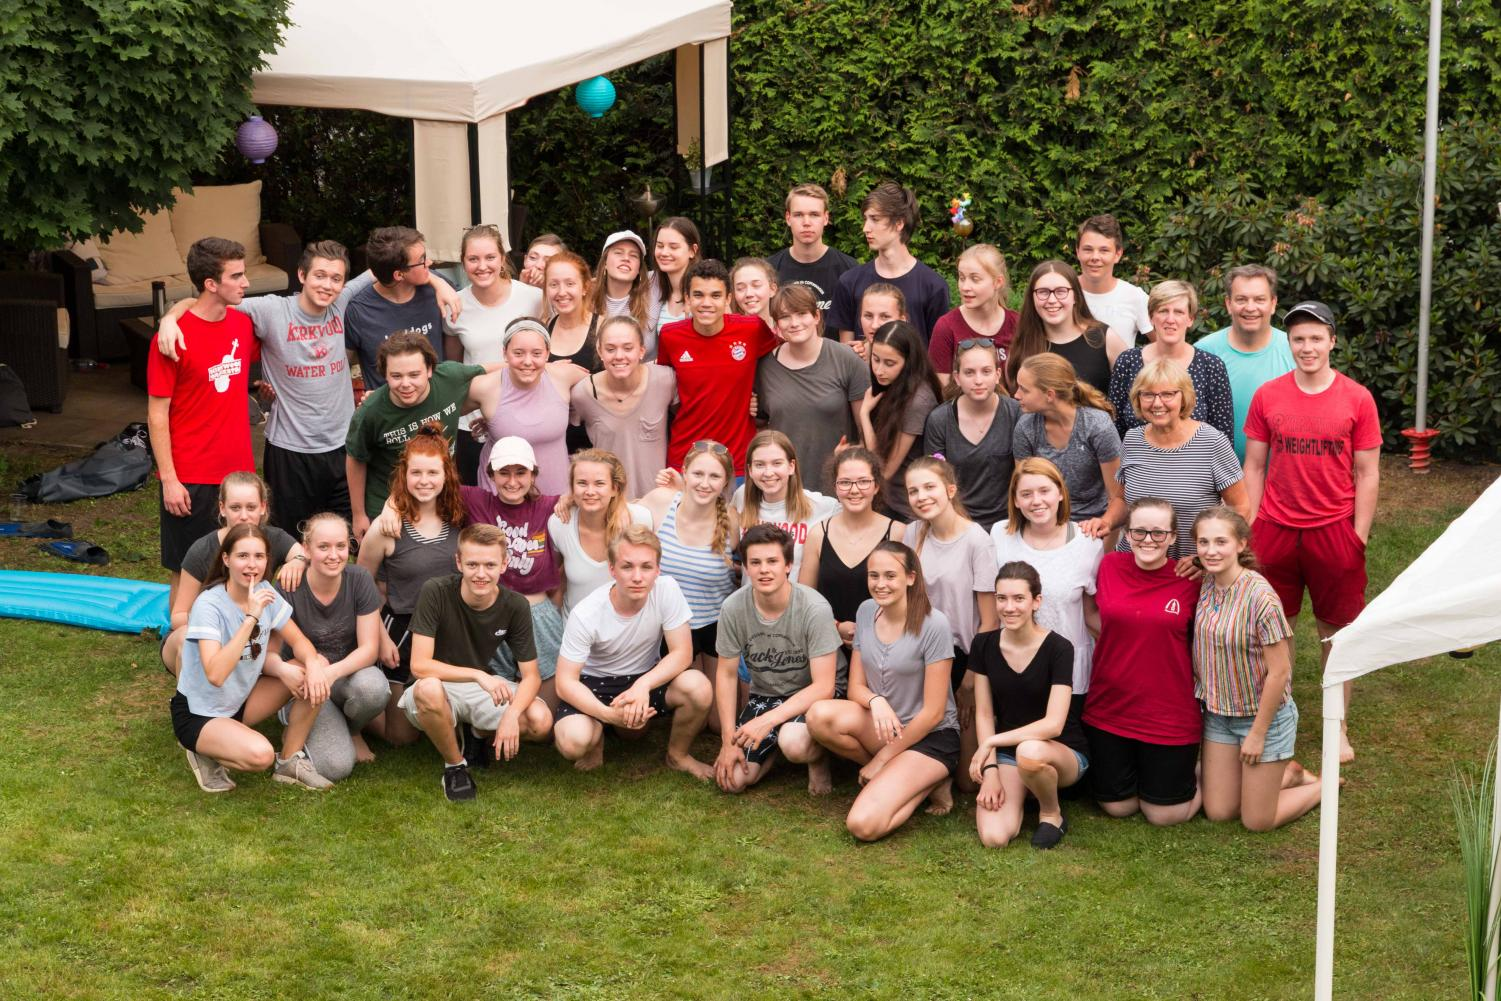 GAPP students get together for a group photo in Germany.